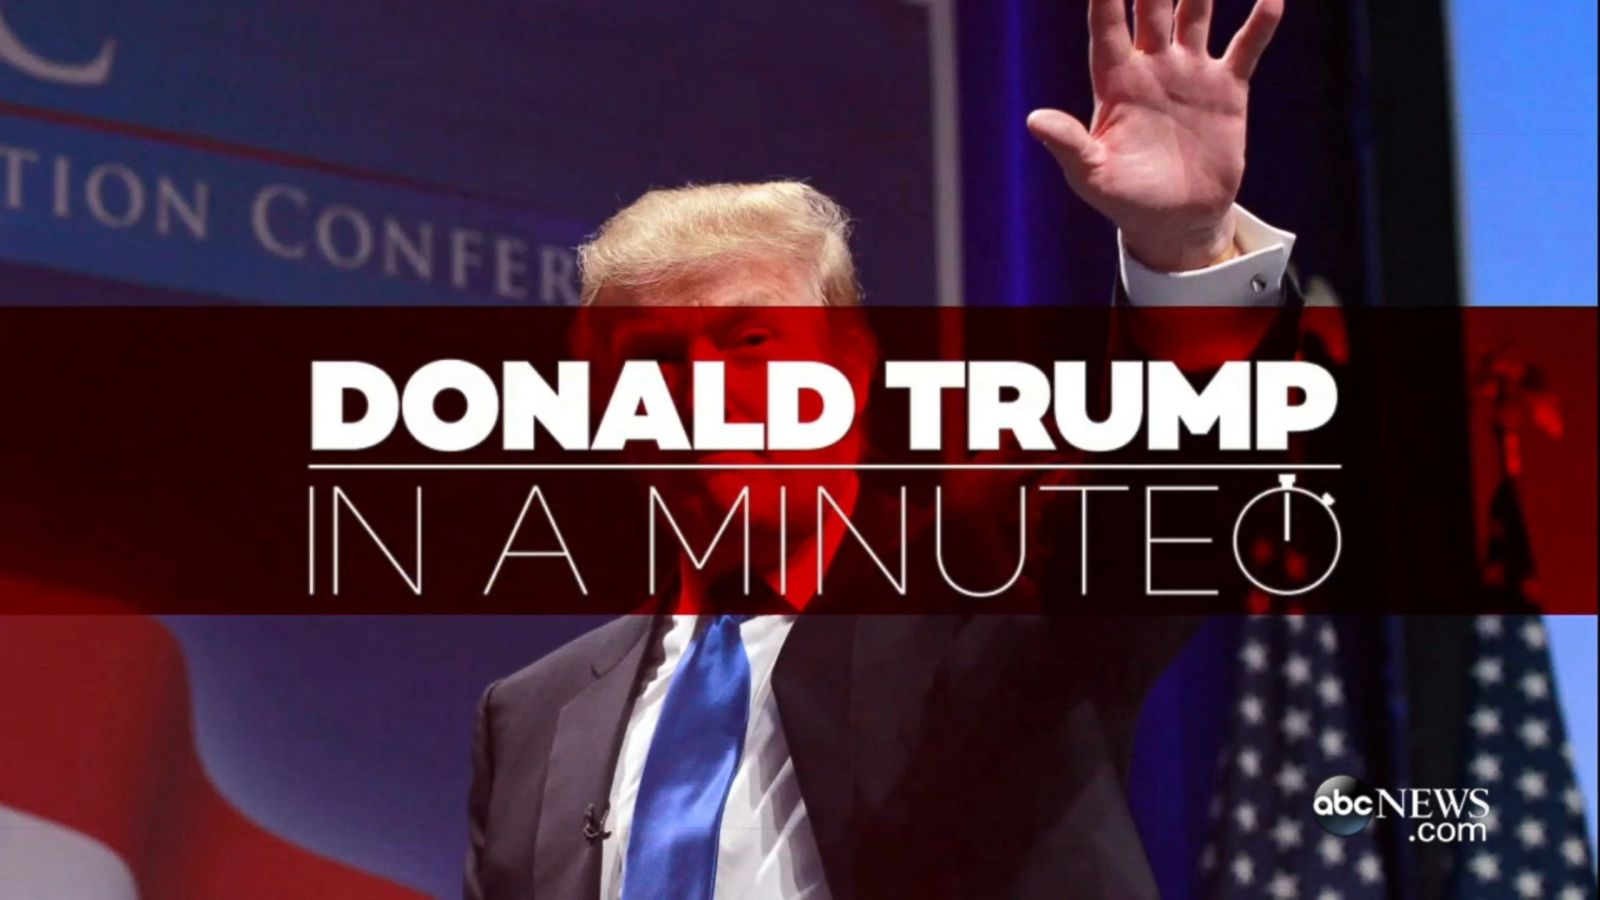 VIDEO: Donald Trump In a Minute